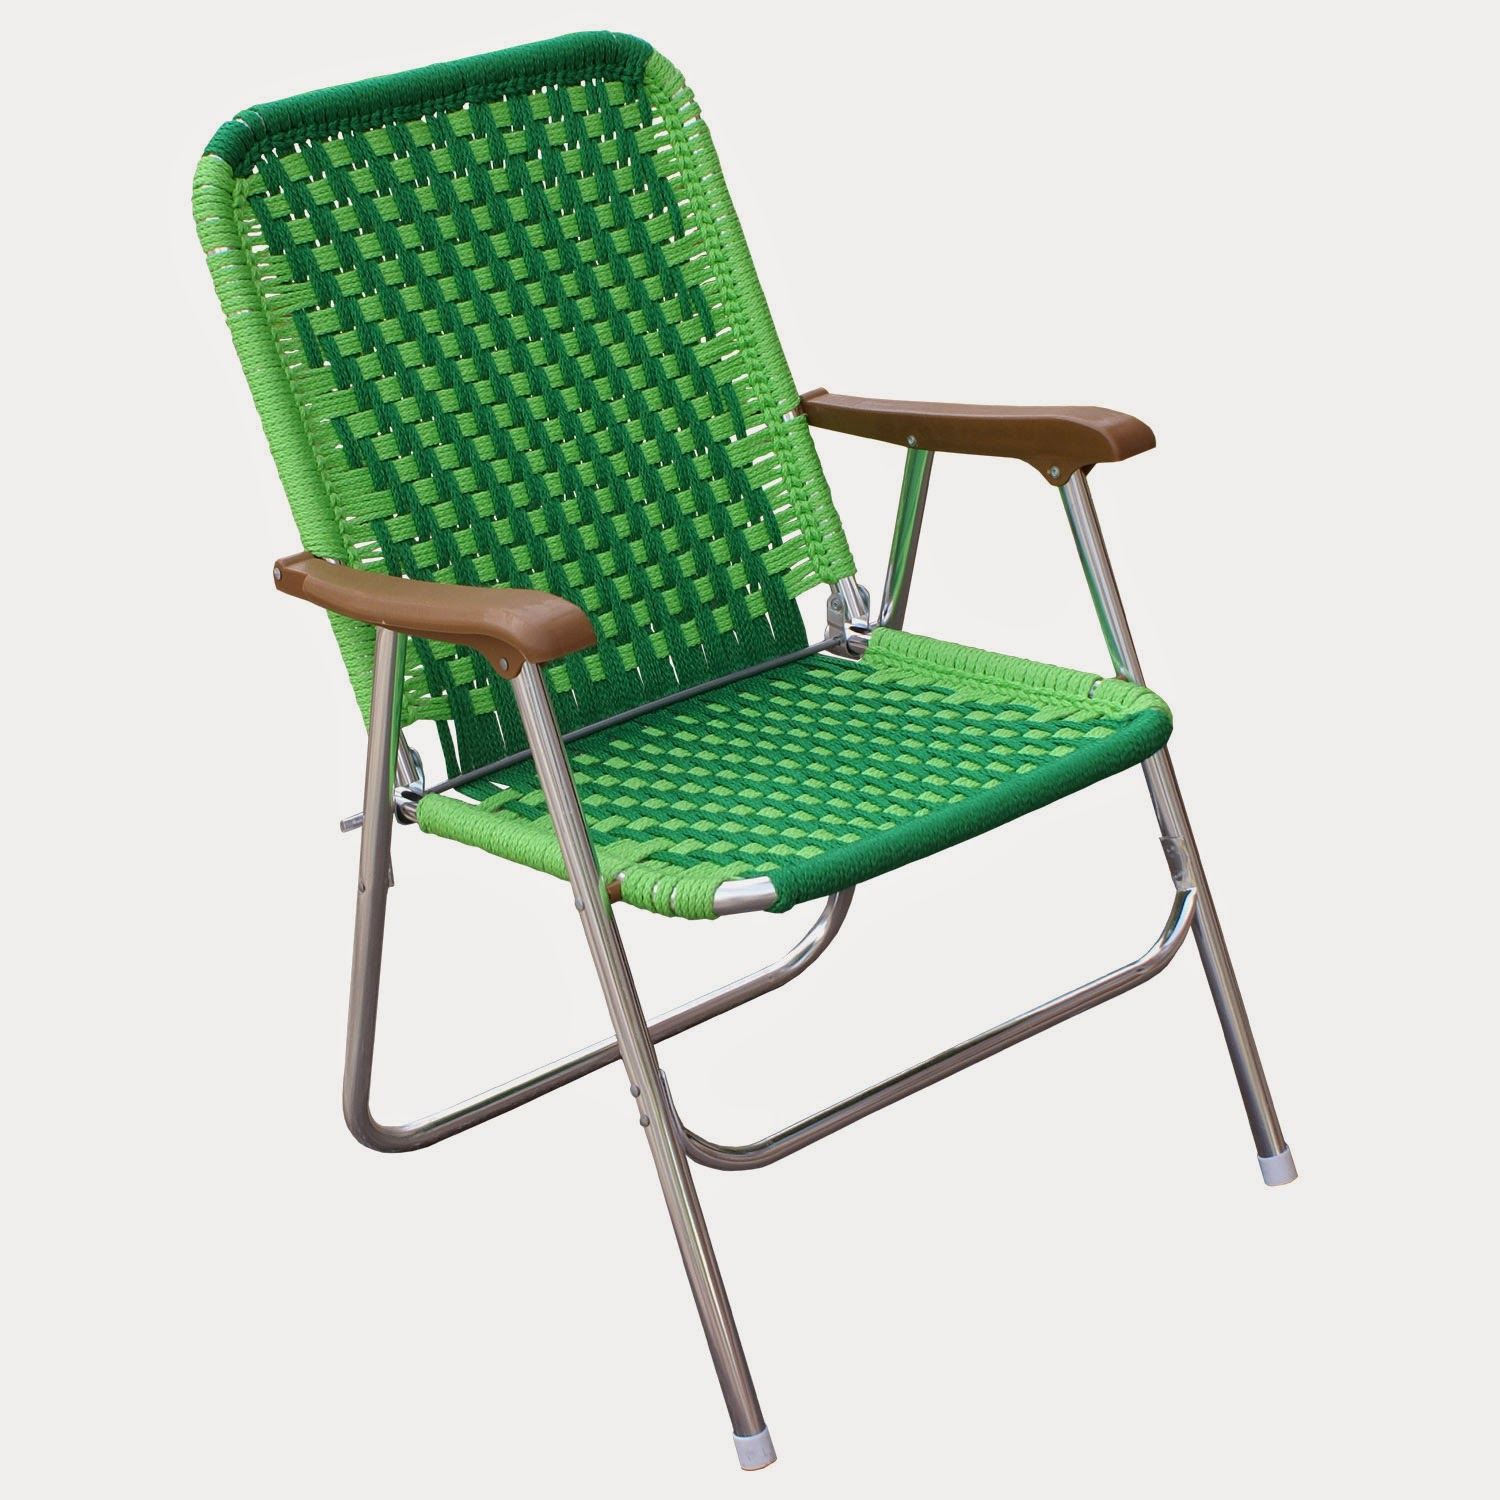 Woven Lawn Chair Frame - Pepperell Braiding Company